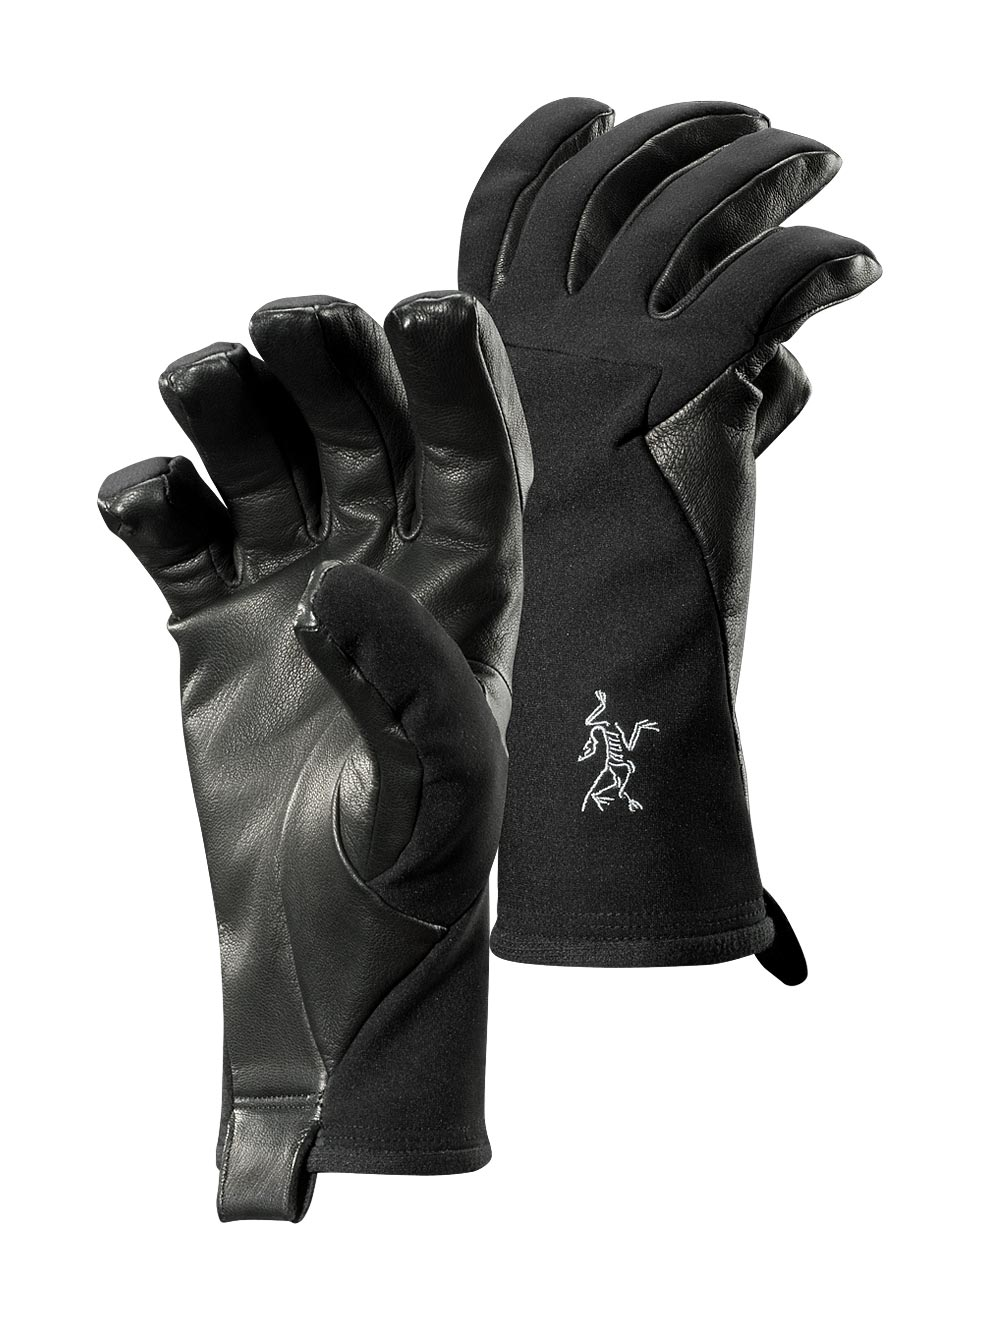 Arcteryx Black Bolt AR Glove